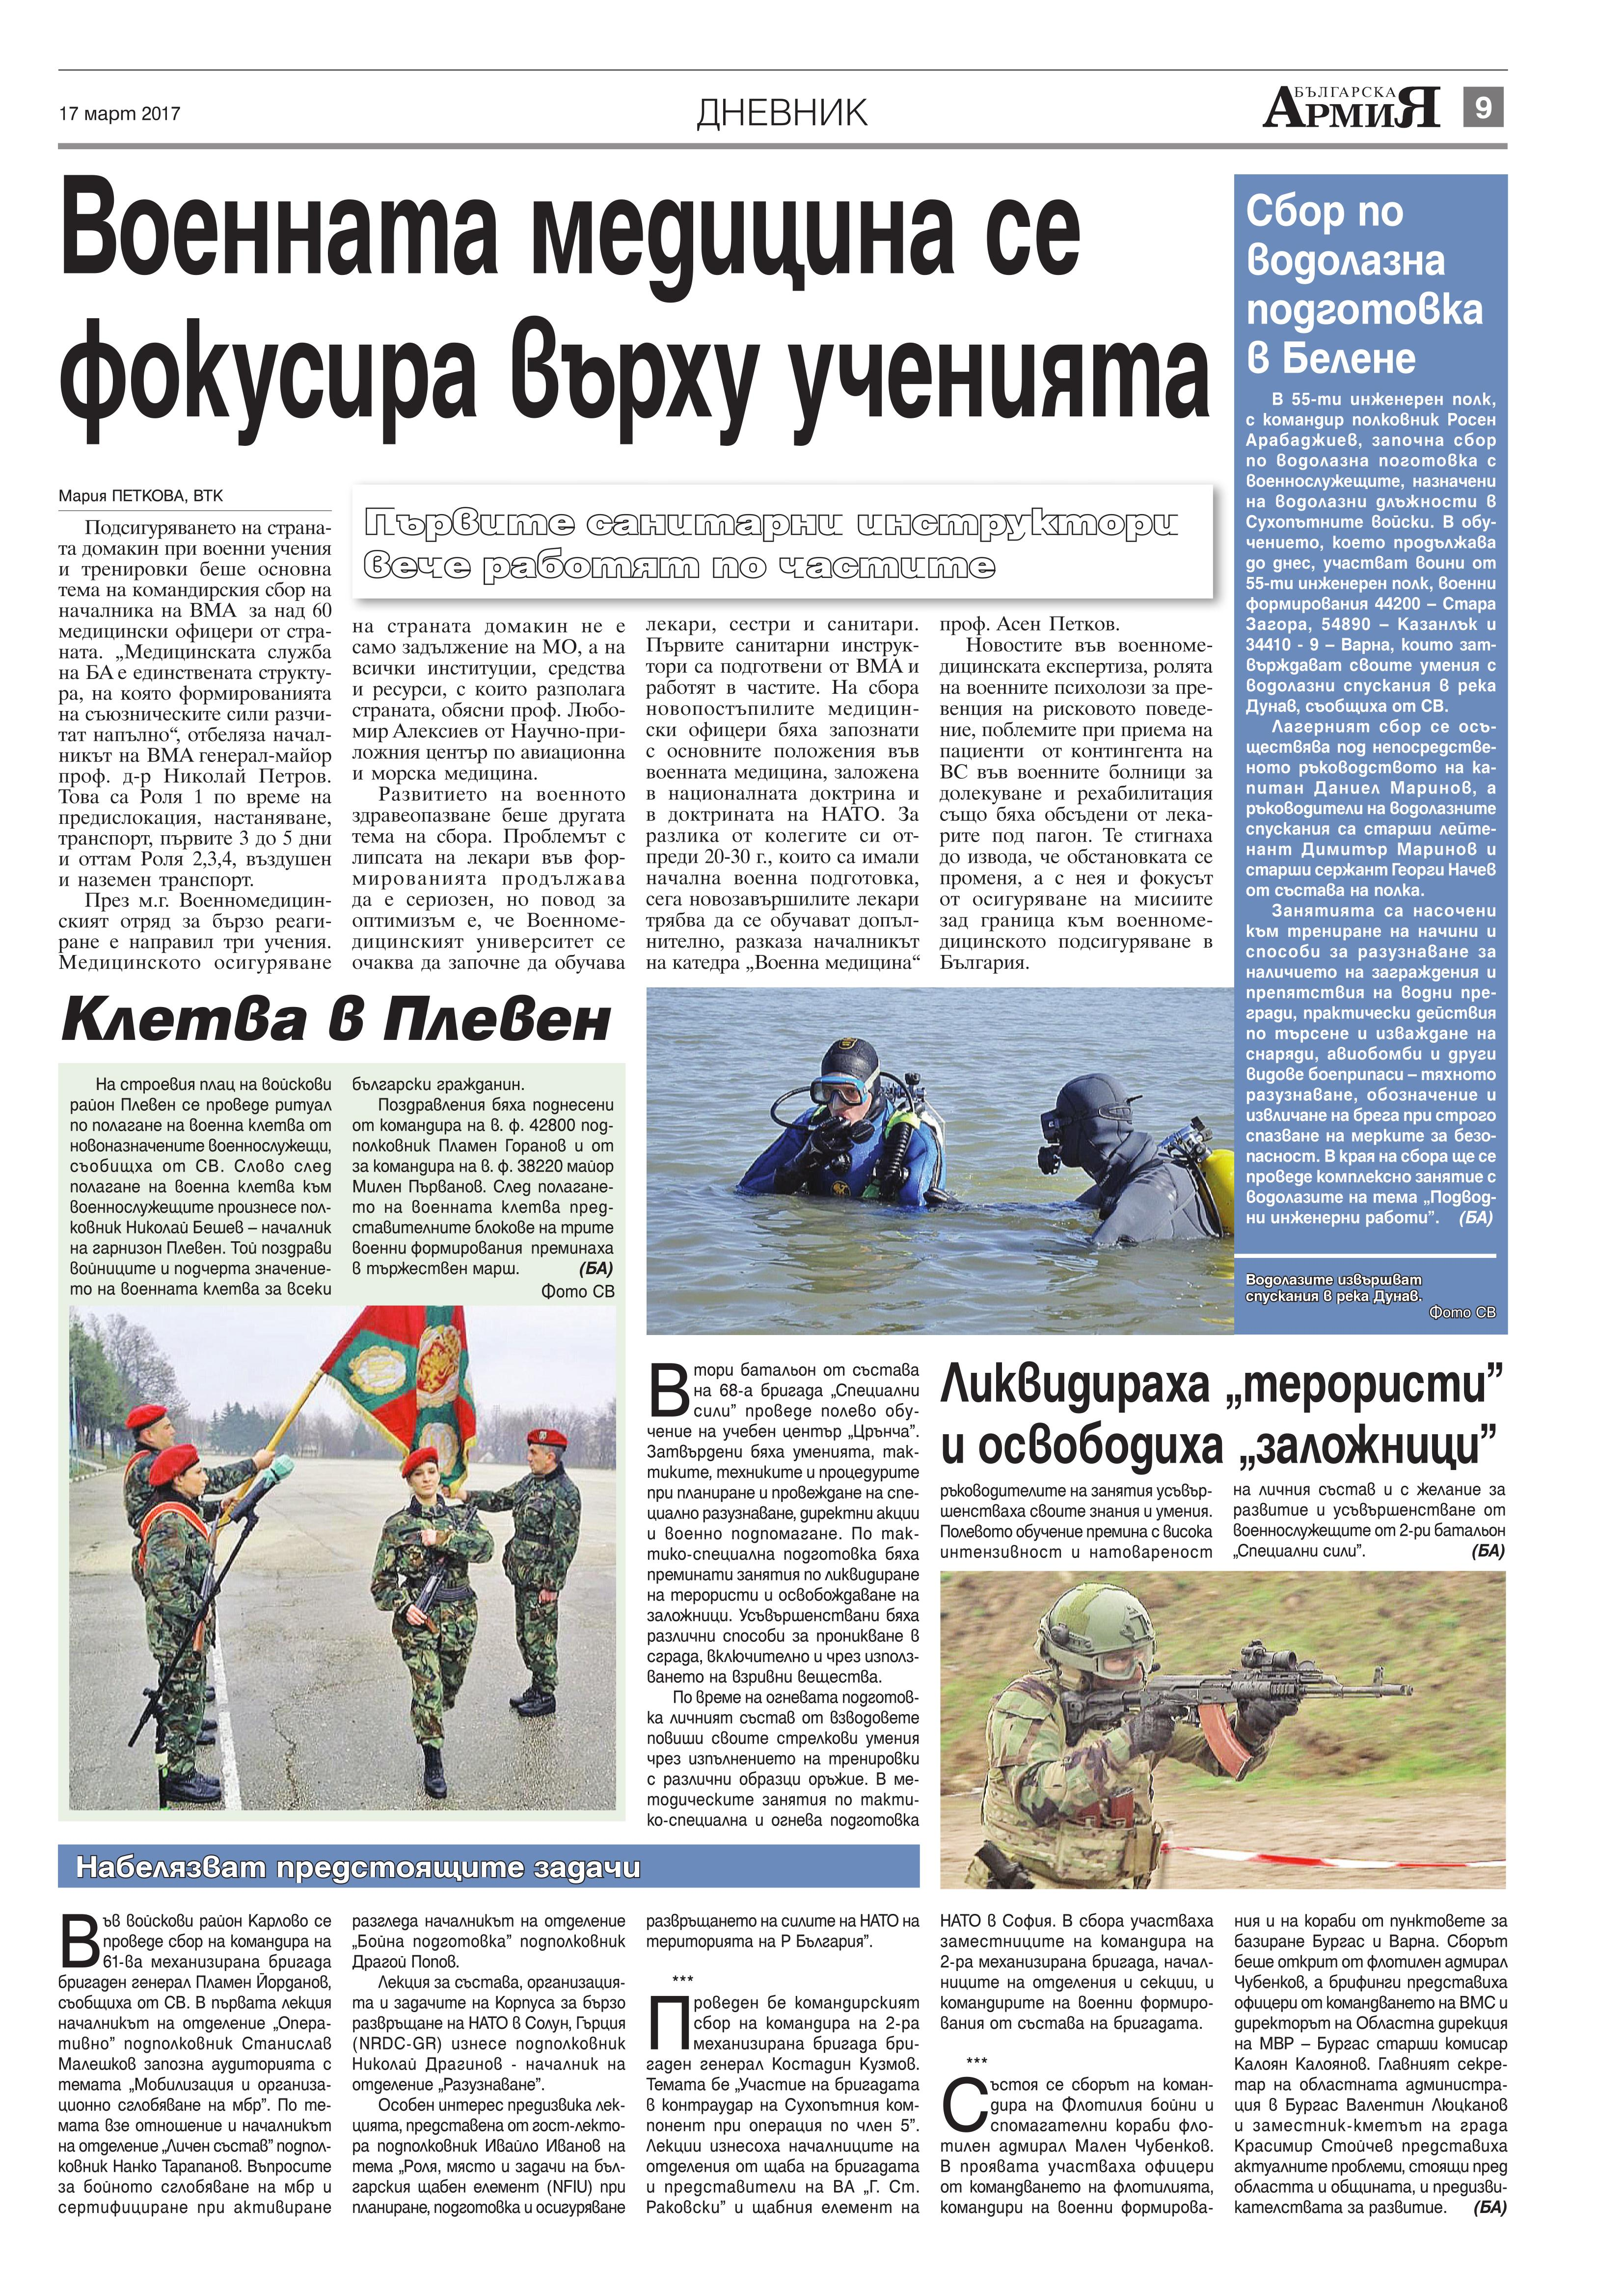 https://www.armymedia.bg/wp-content/uploads/2015/06/09.page1_-17.jpg